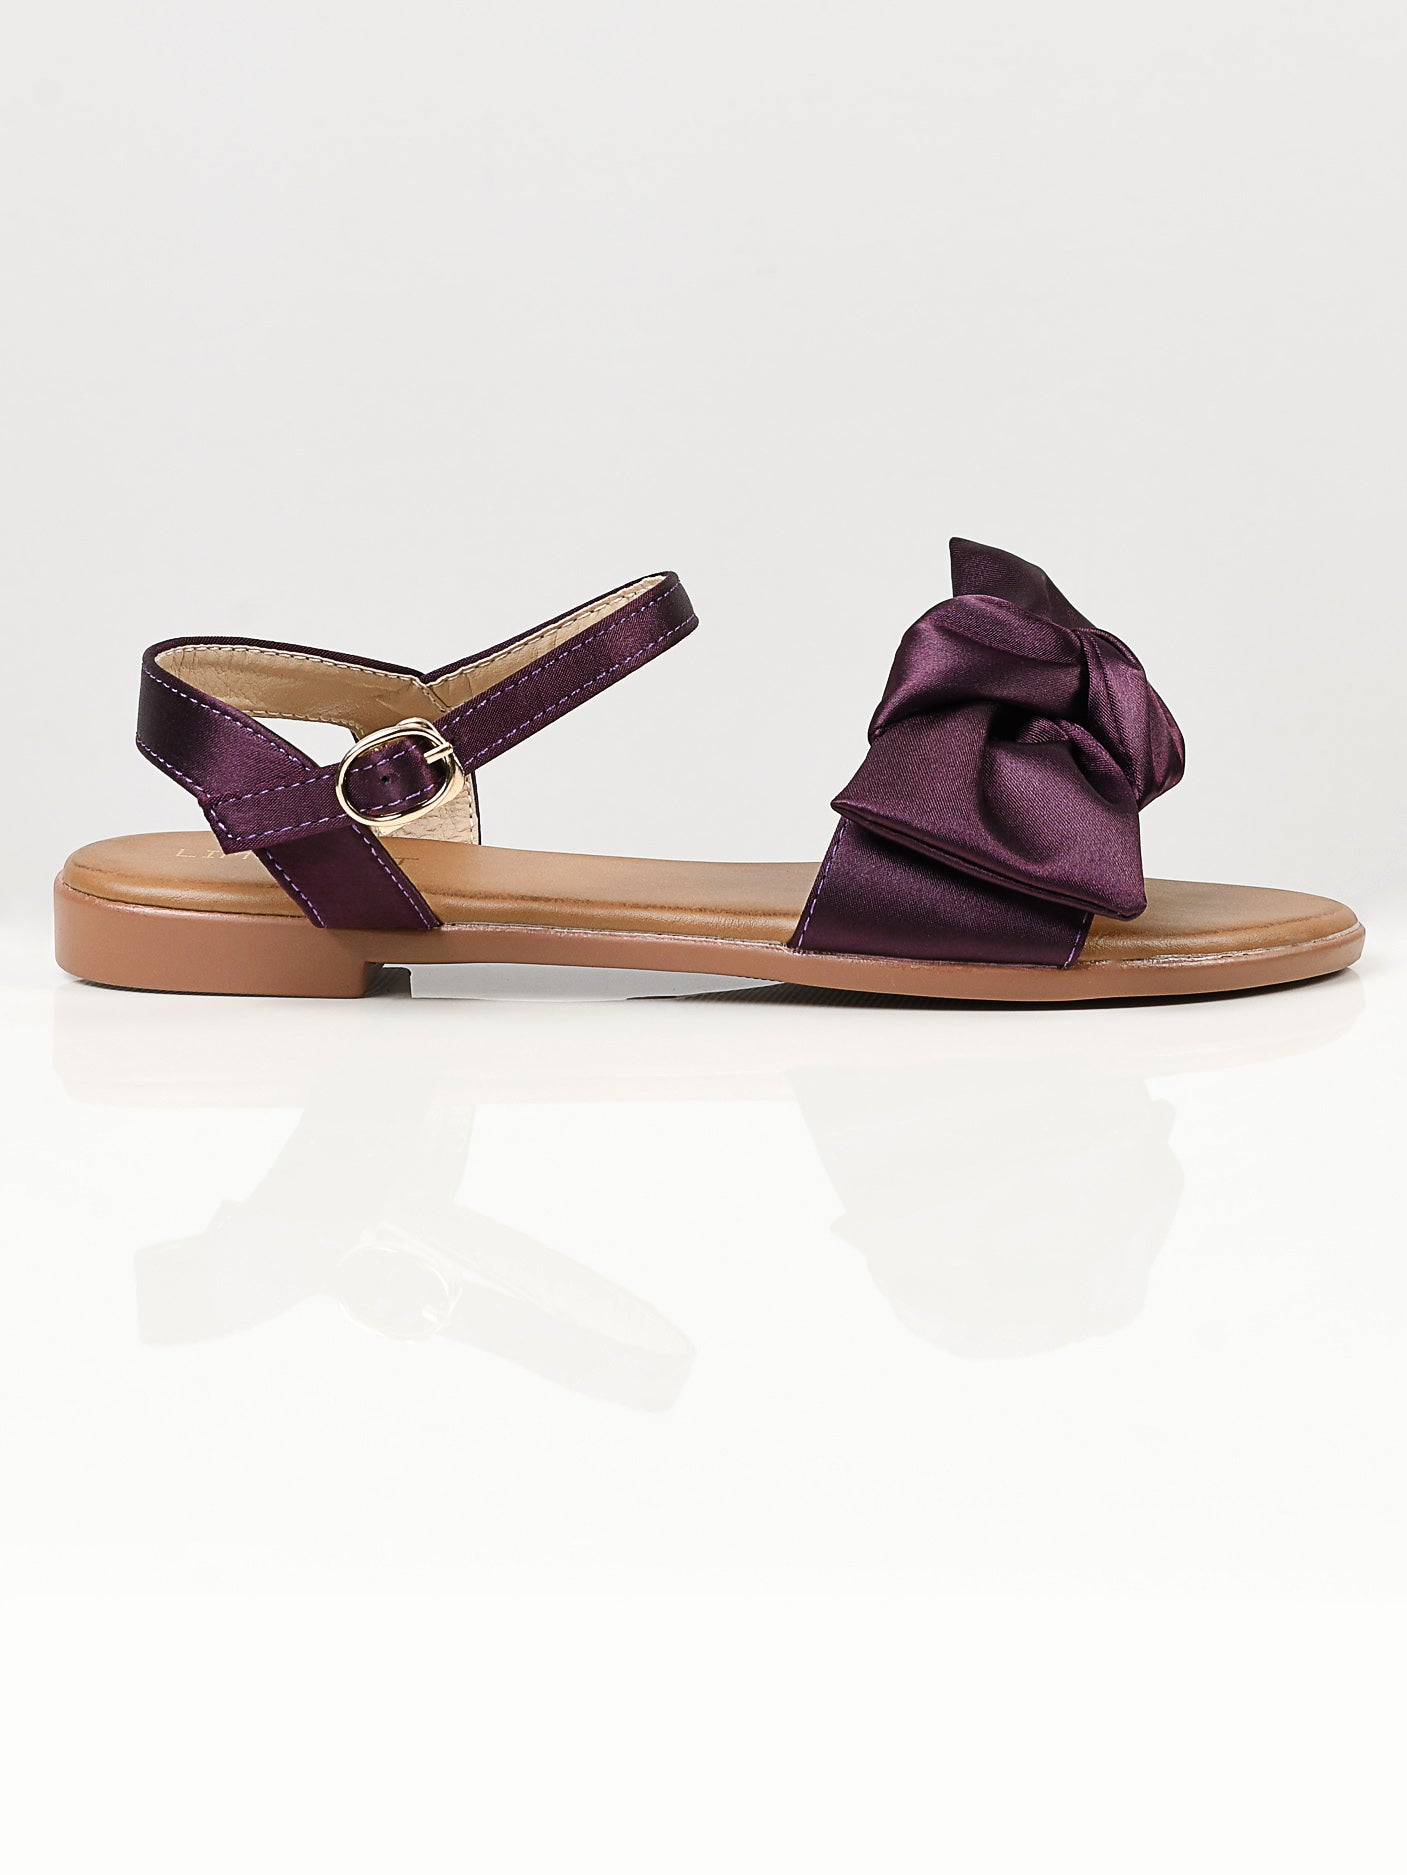 Satin Bow Sandals - Purple